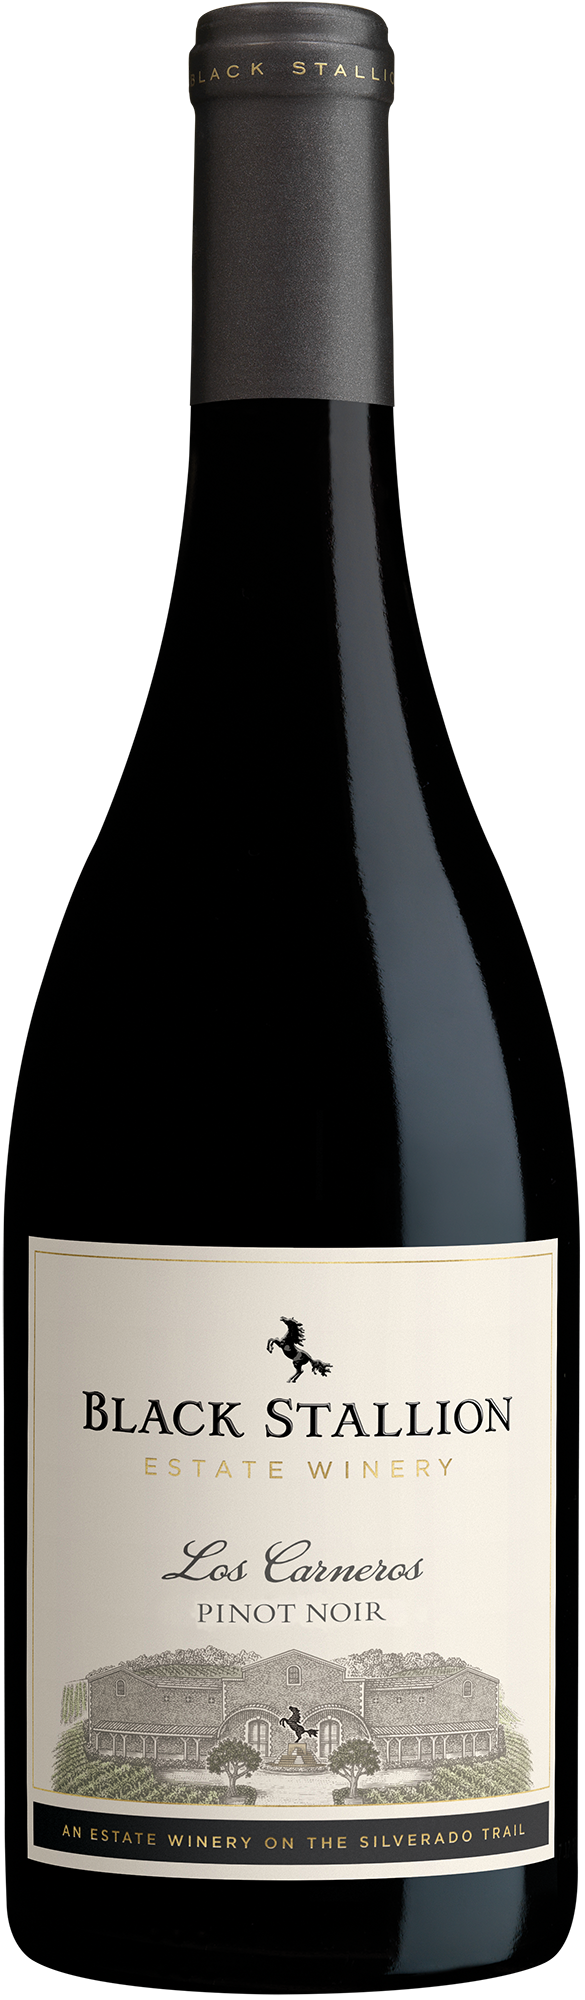 Heritage Napa Valley Pinot Noir Product Image